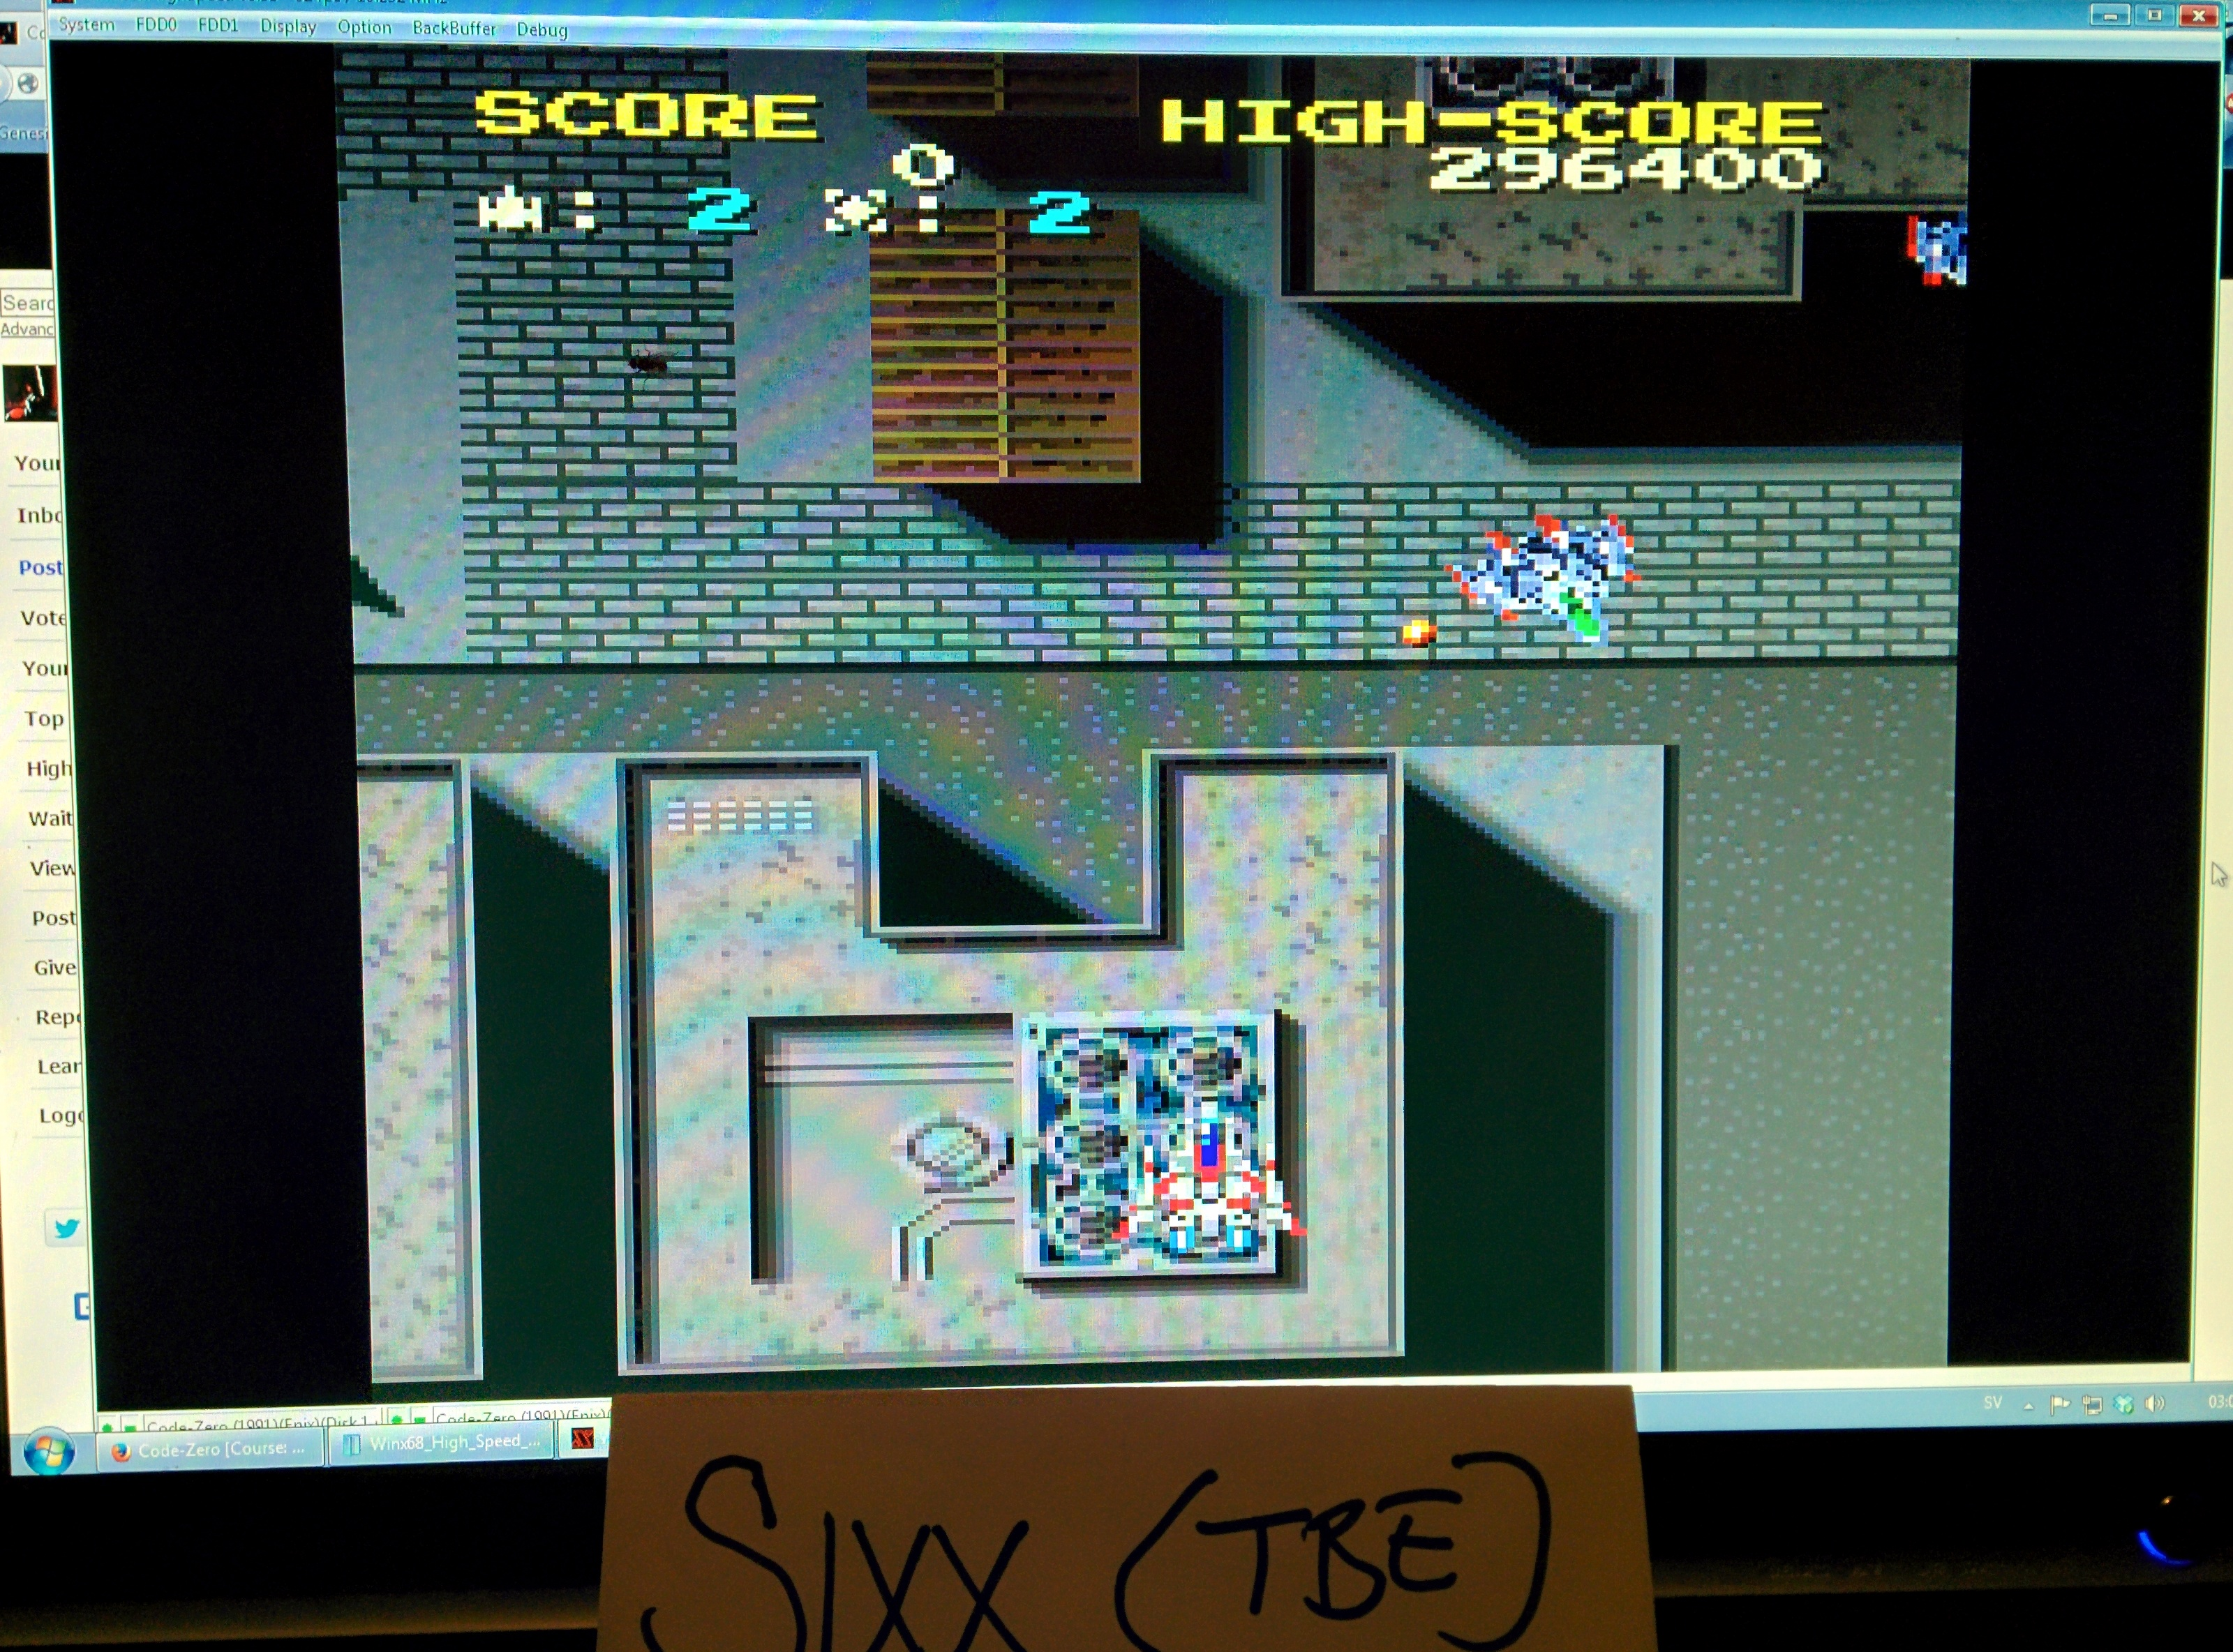 Sixx: Code-Zero [Course: Standerd] (Sharp X68000 Emulated) 296,400 points on 2014-05-15 20:10:33